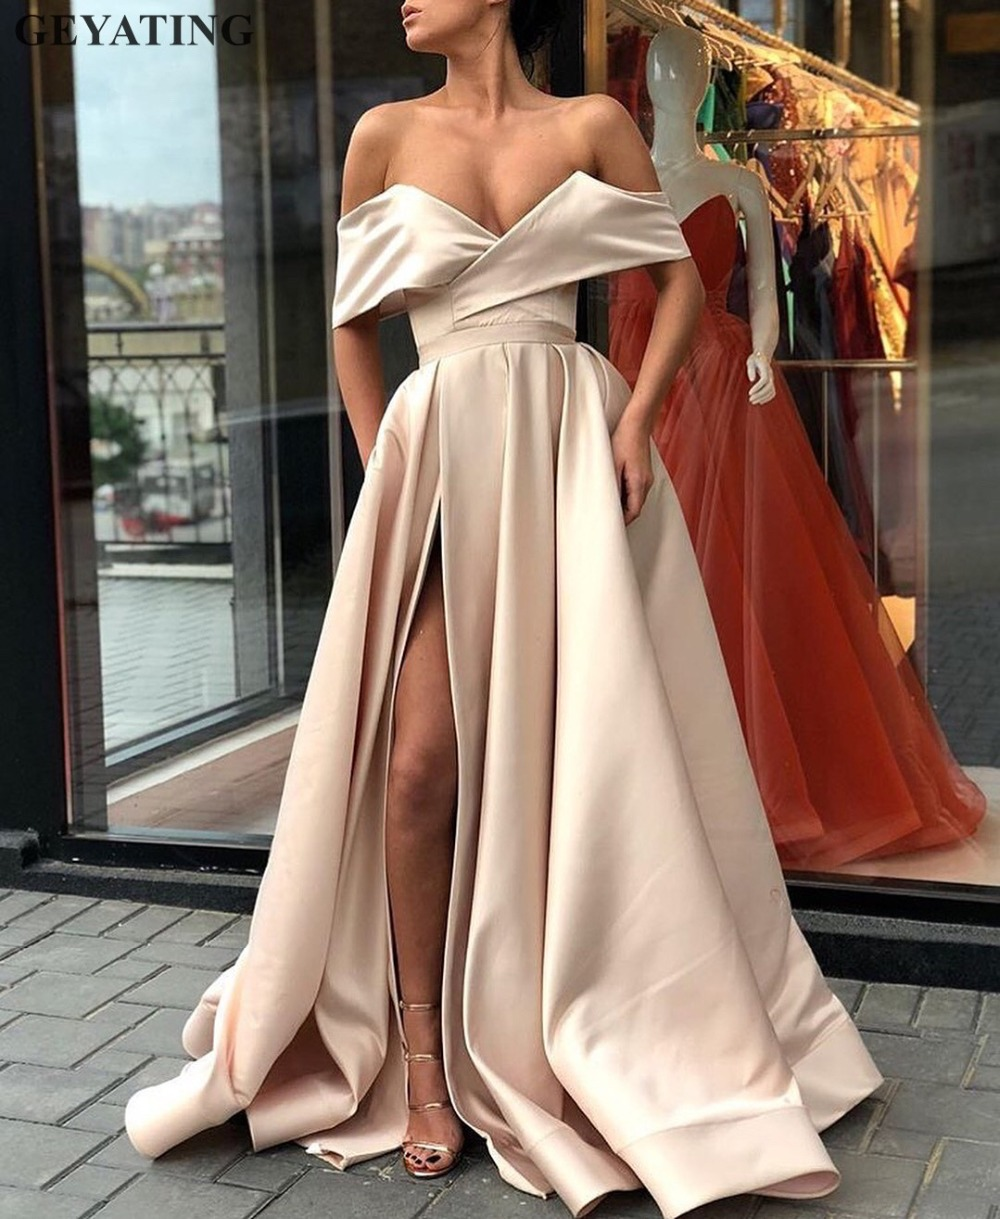 8c3bc7a61c0f0 Women Long Elegant Evening Dress Sexy Side Split Cream Satin Off the  Shoulder Junior Prom Dresses 2019 Vestifos largos de fiesta on  Aliexpress.com | Alibaba ...